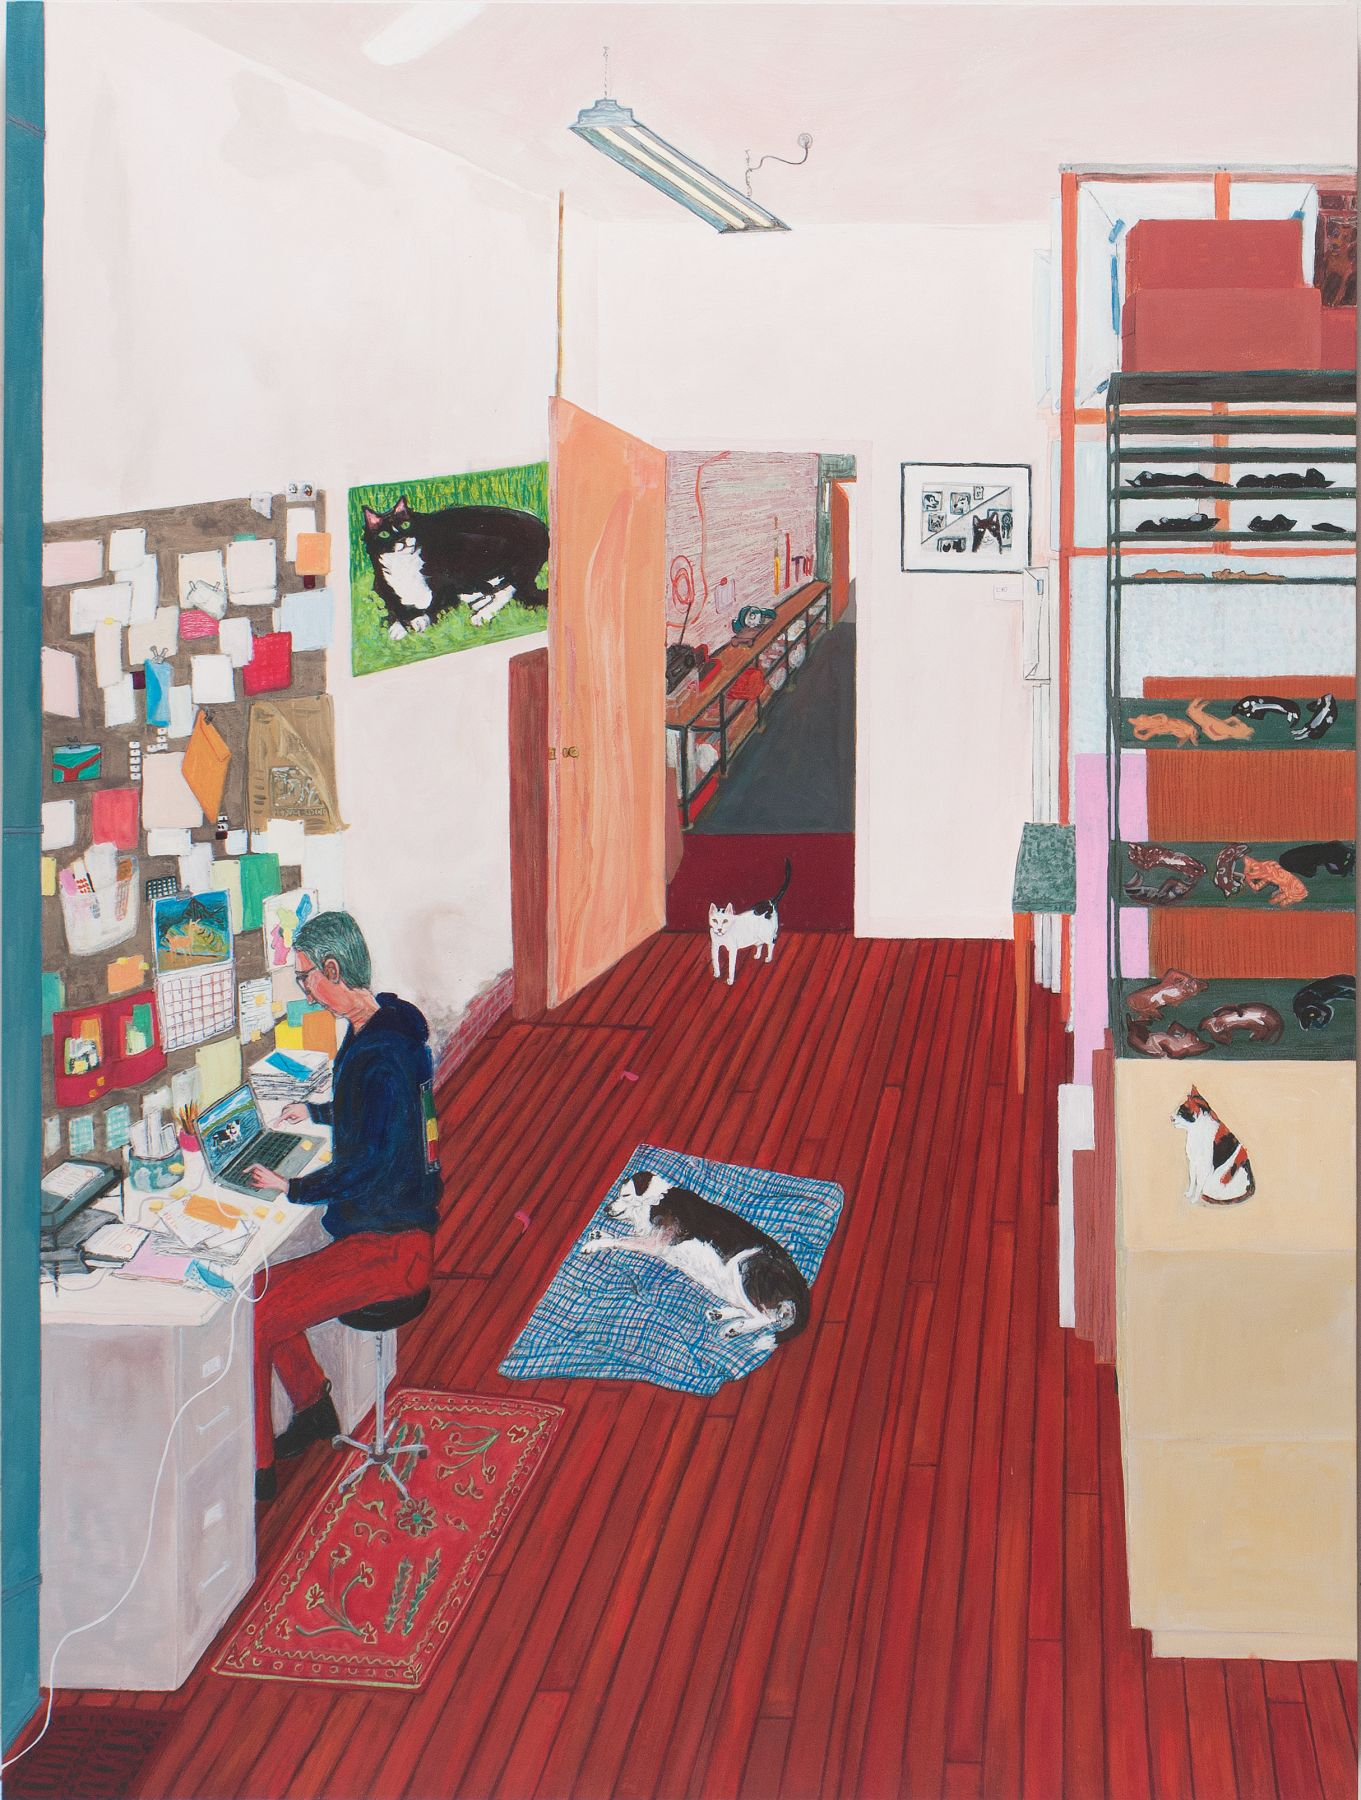 Sarah McEneaney, Office Work, 2016, acrylic on wood, 48 x 26 inches (courtesy of Locks Gallery)